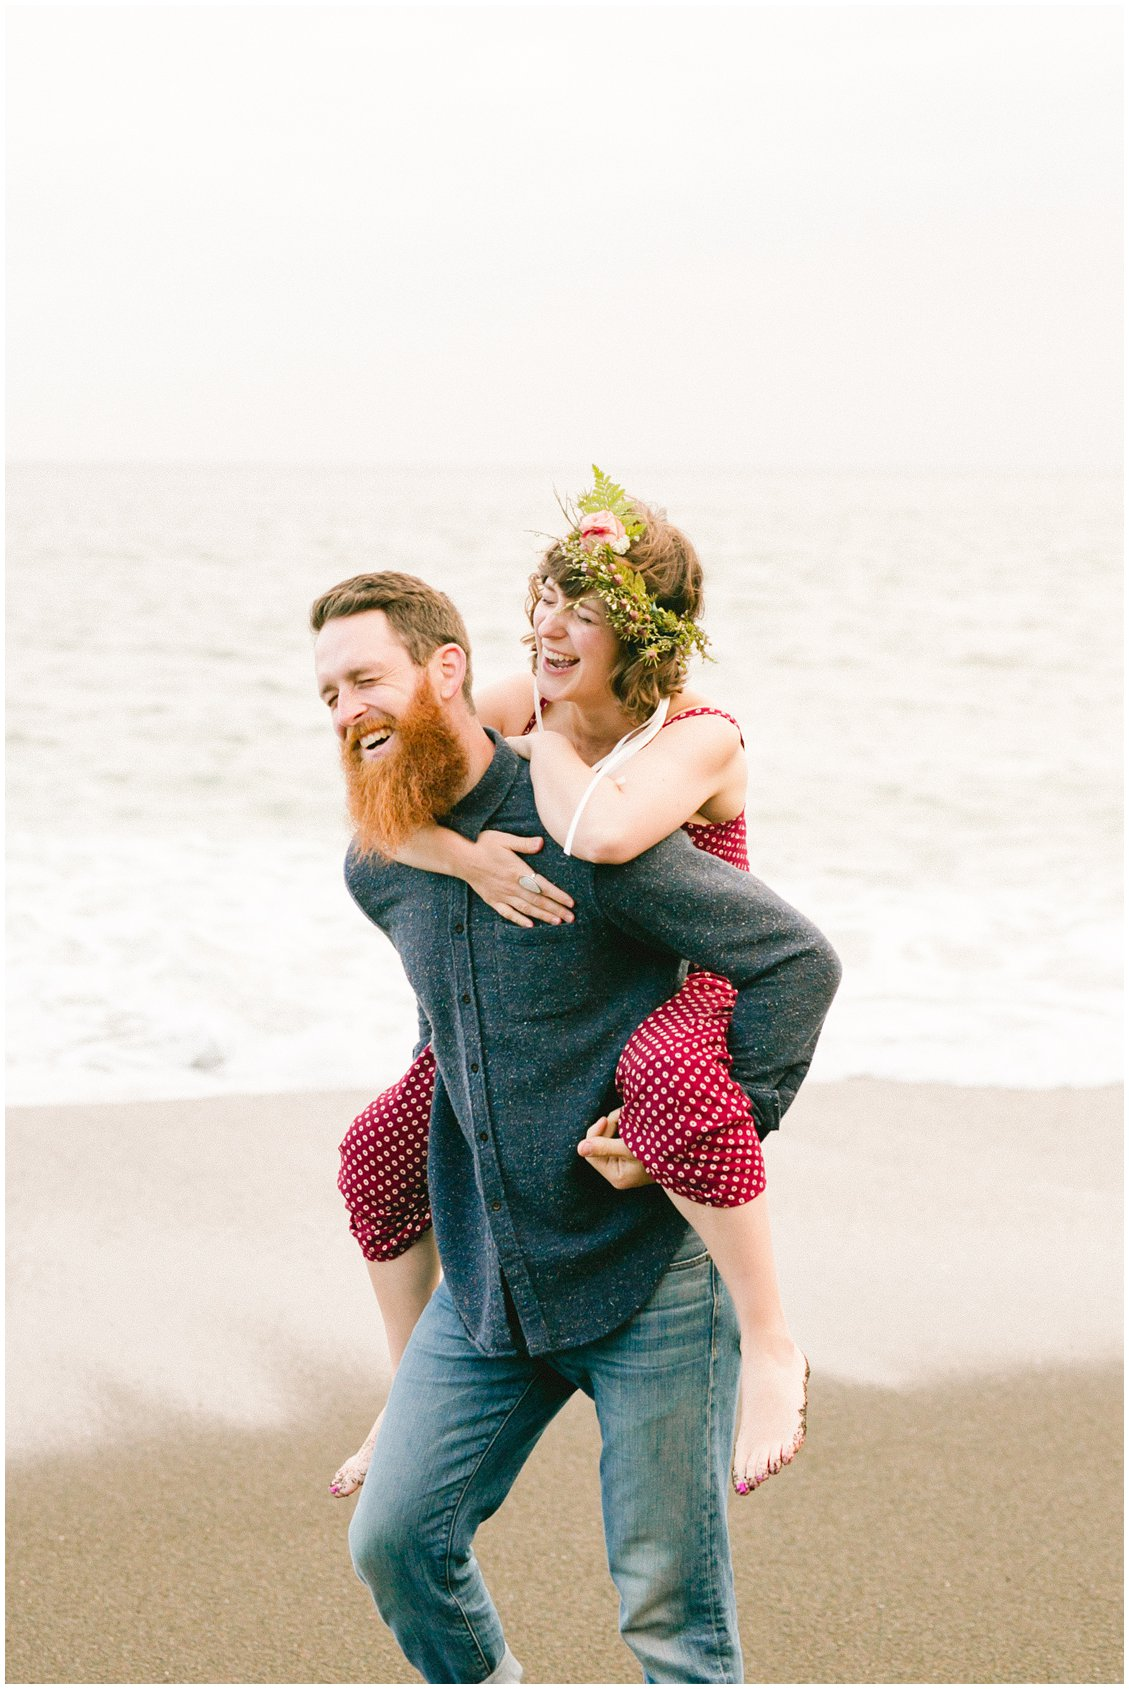 A San Francisco Bay Adventurous couples anniversary photography session at Black Sands Beach in Northern California by Pattengale Photography